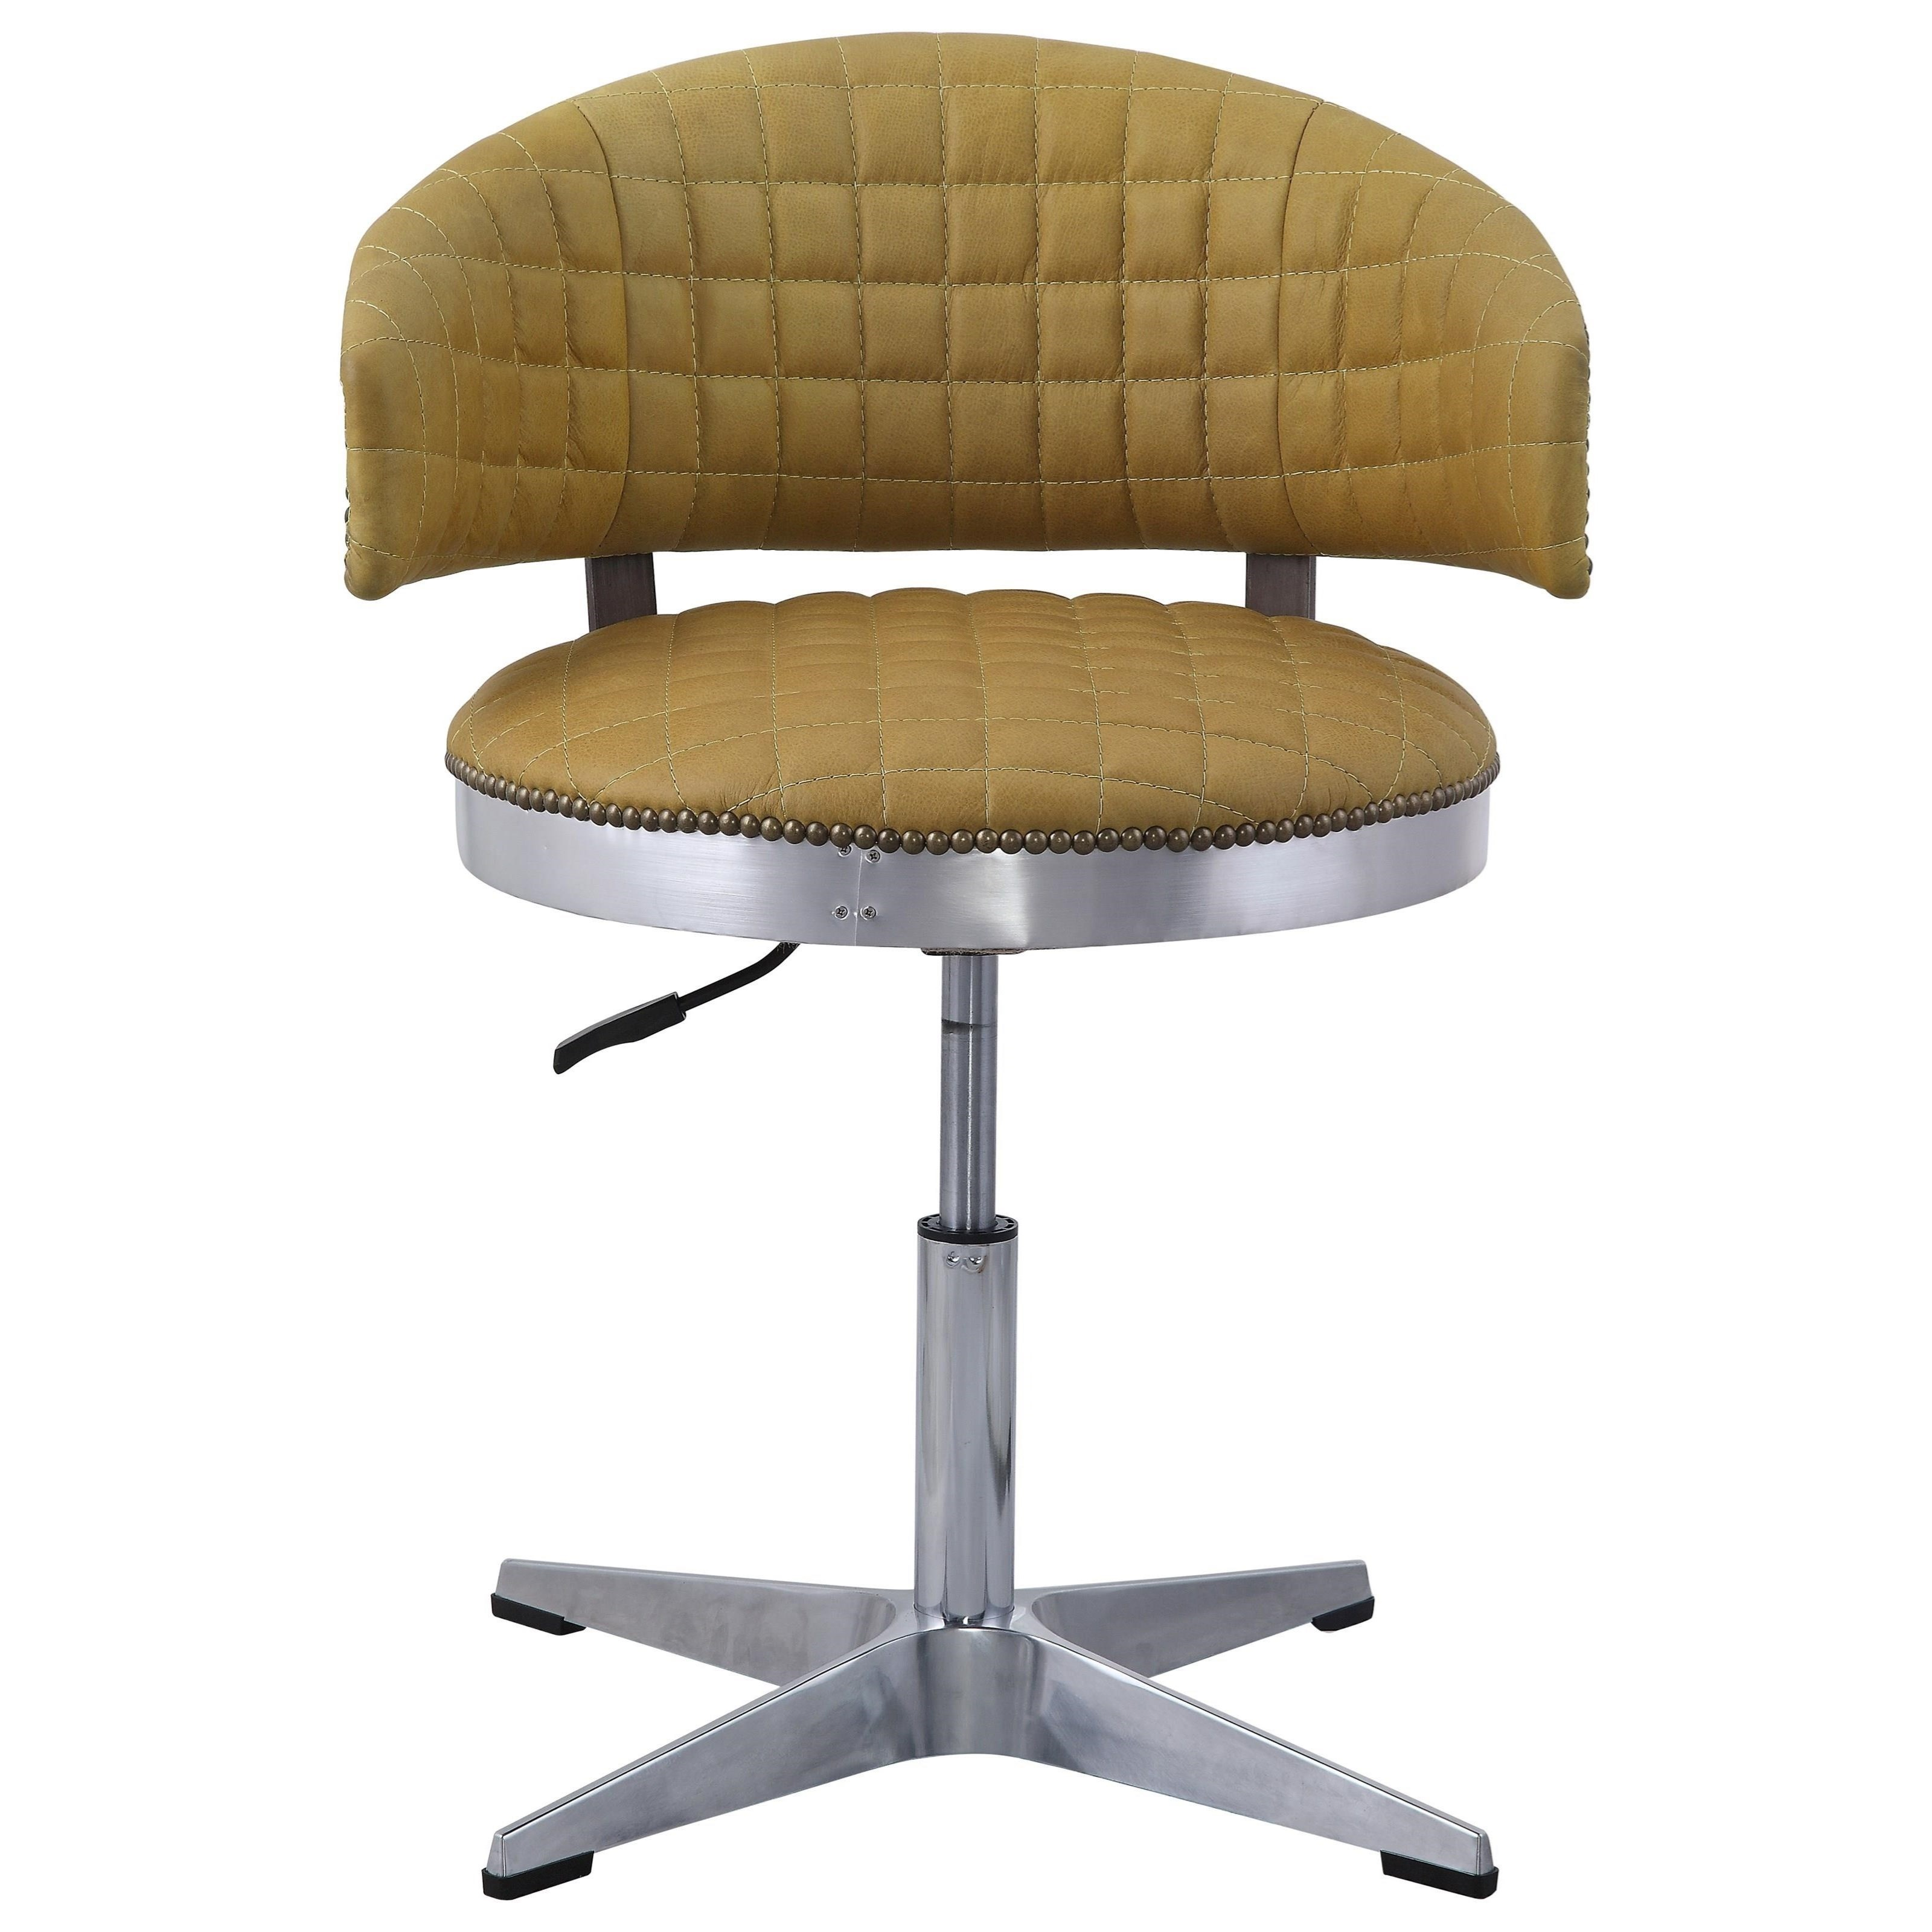 Brancaster Adjustable Chair w/Swivel by Acme Furniture at Carolina Direct